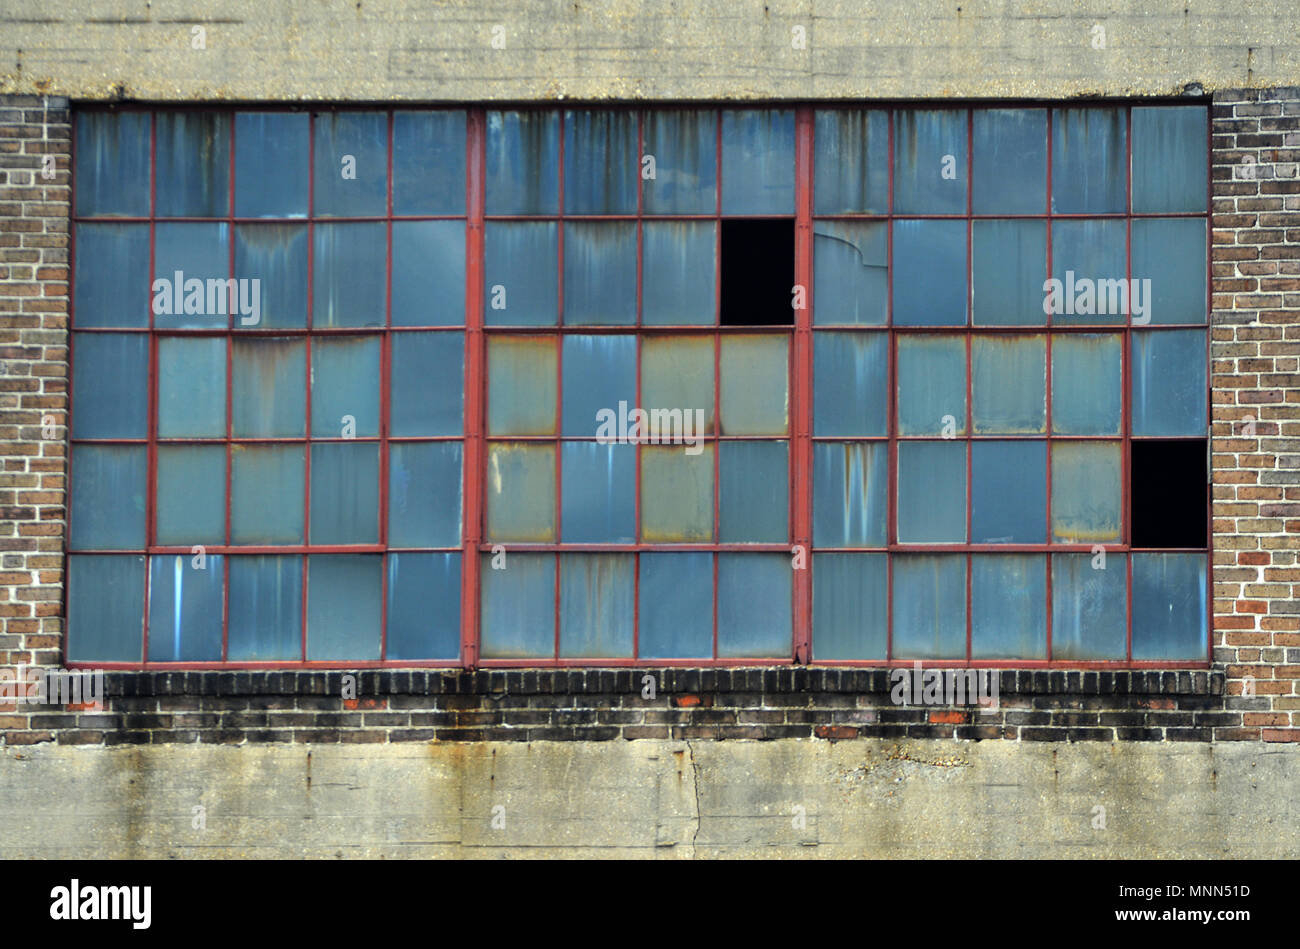 A large window on an old industrial building in the warehouse district of New Orleans Stock Photo